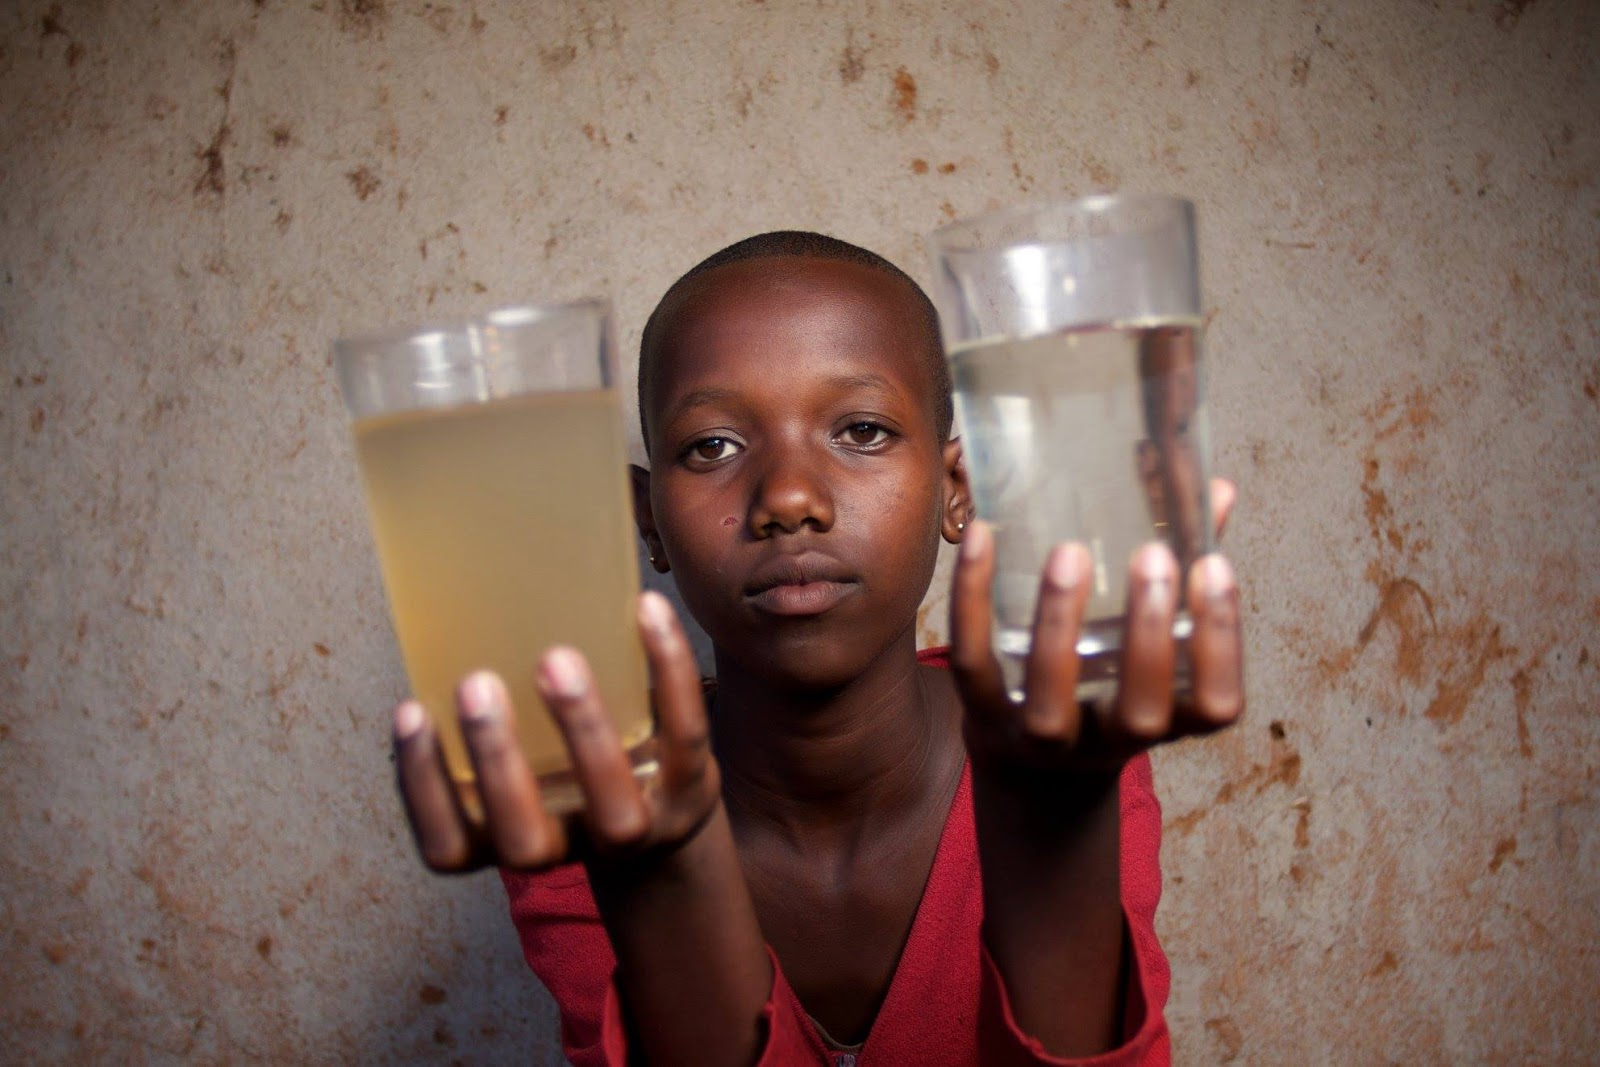 Leaders To Ensure Availability Of Safe Water In Africa by 2030